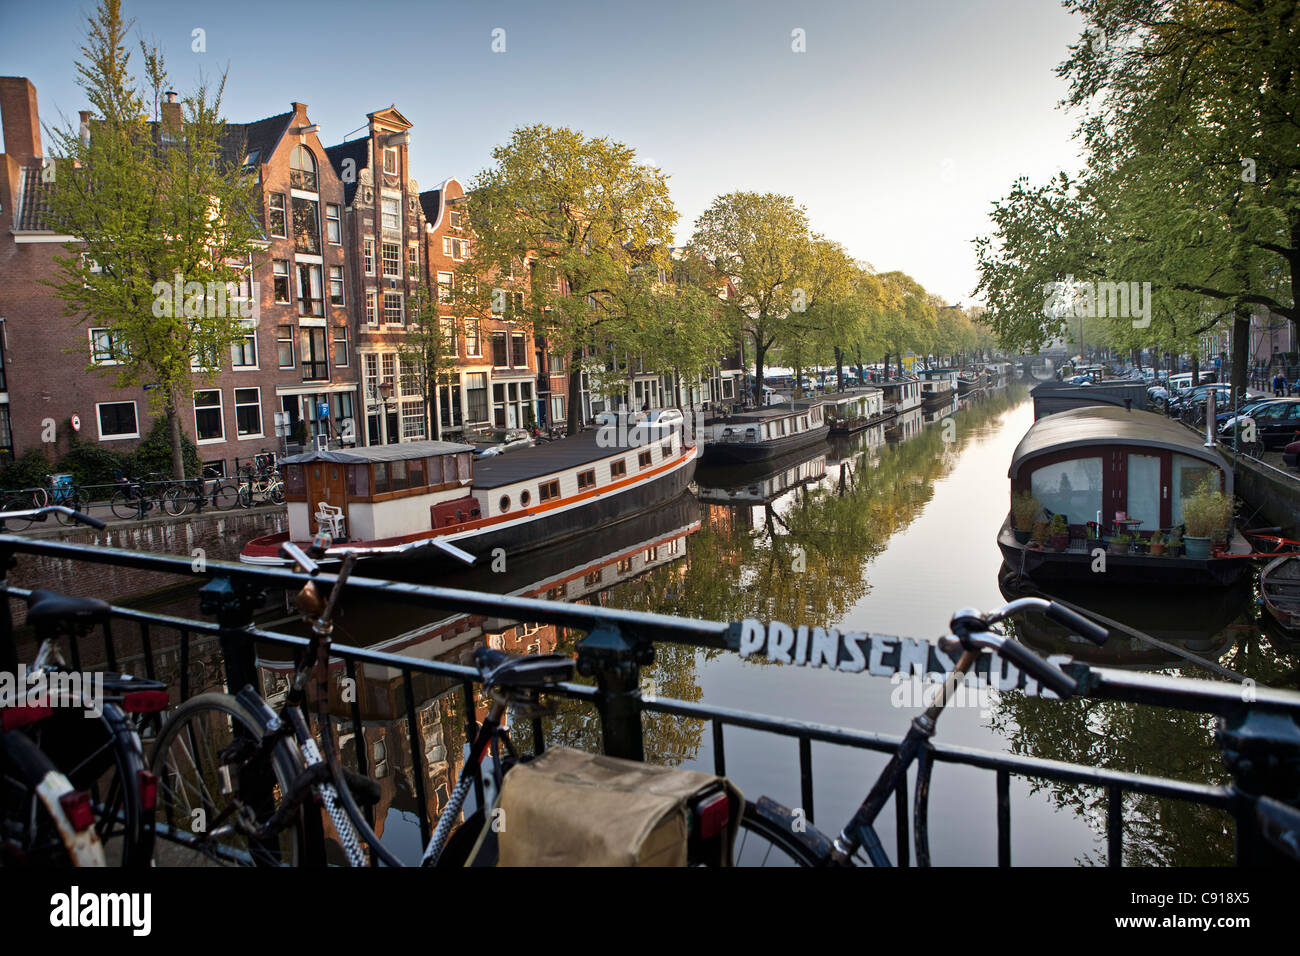 The Netherlands, Amsterdam, 17th century houses and houseboats at canal called Prinsengracht. UNESCO World Heritage - Stock Image